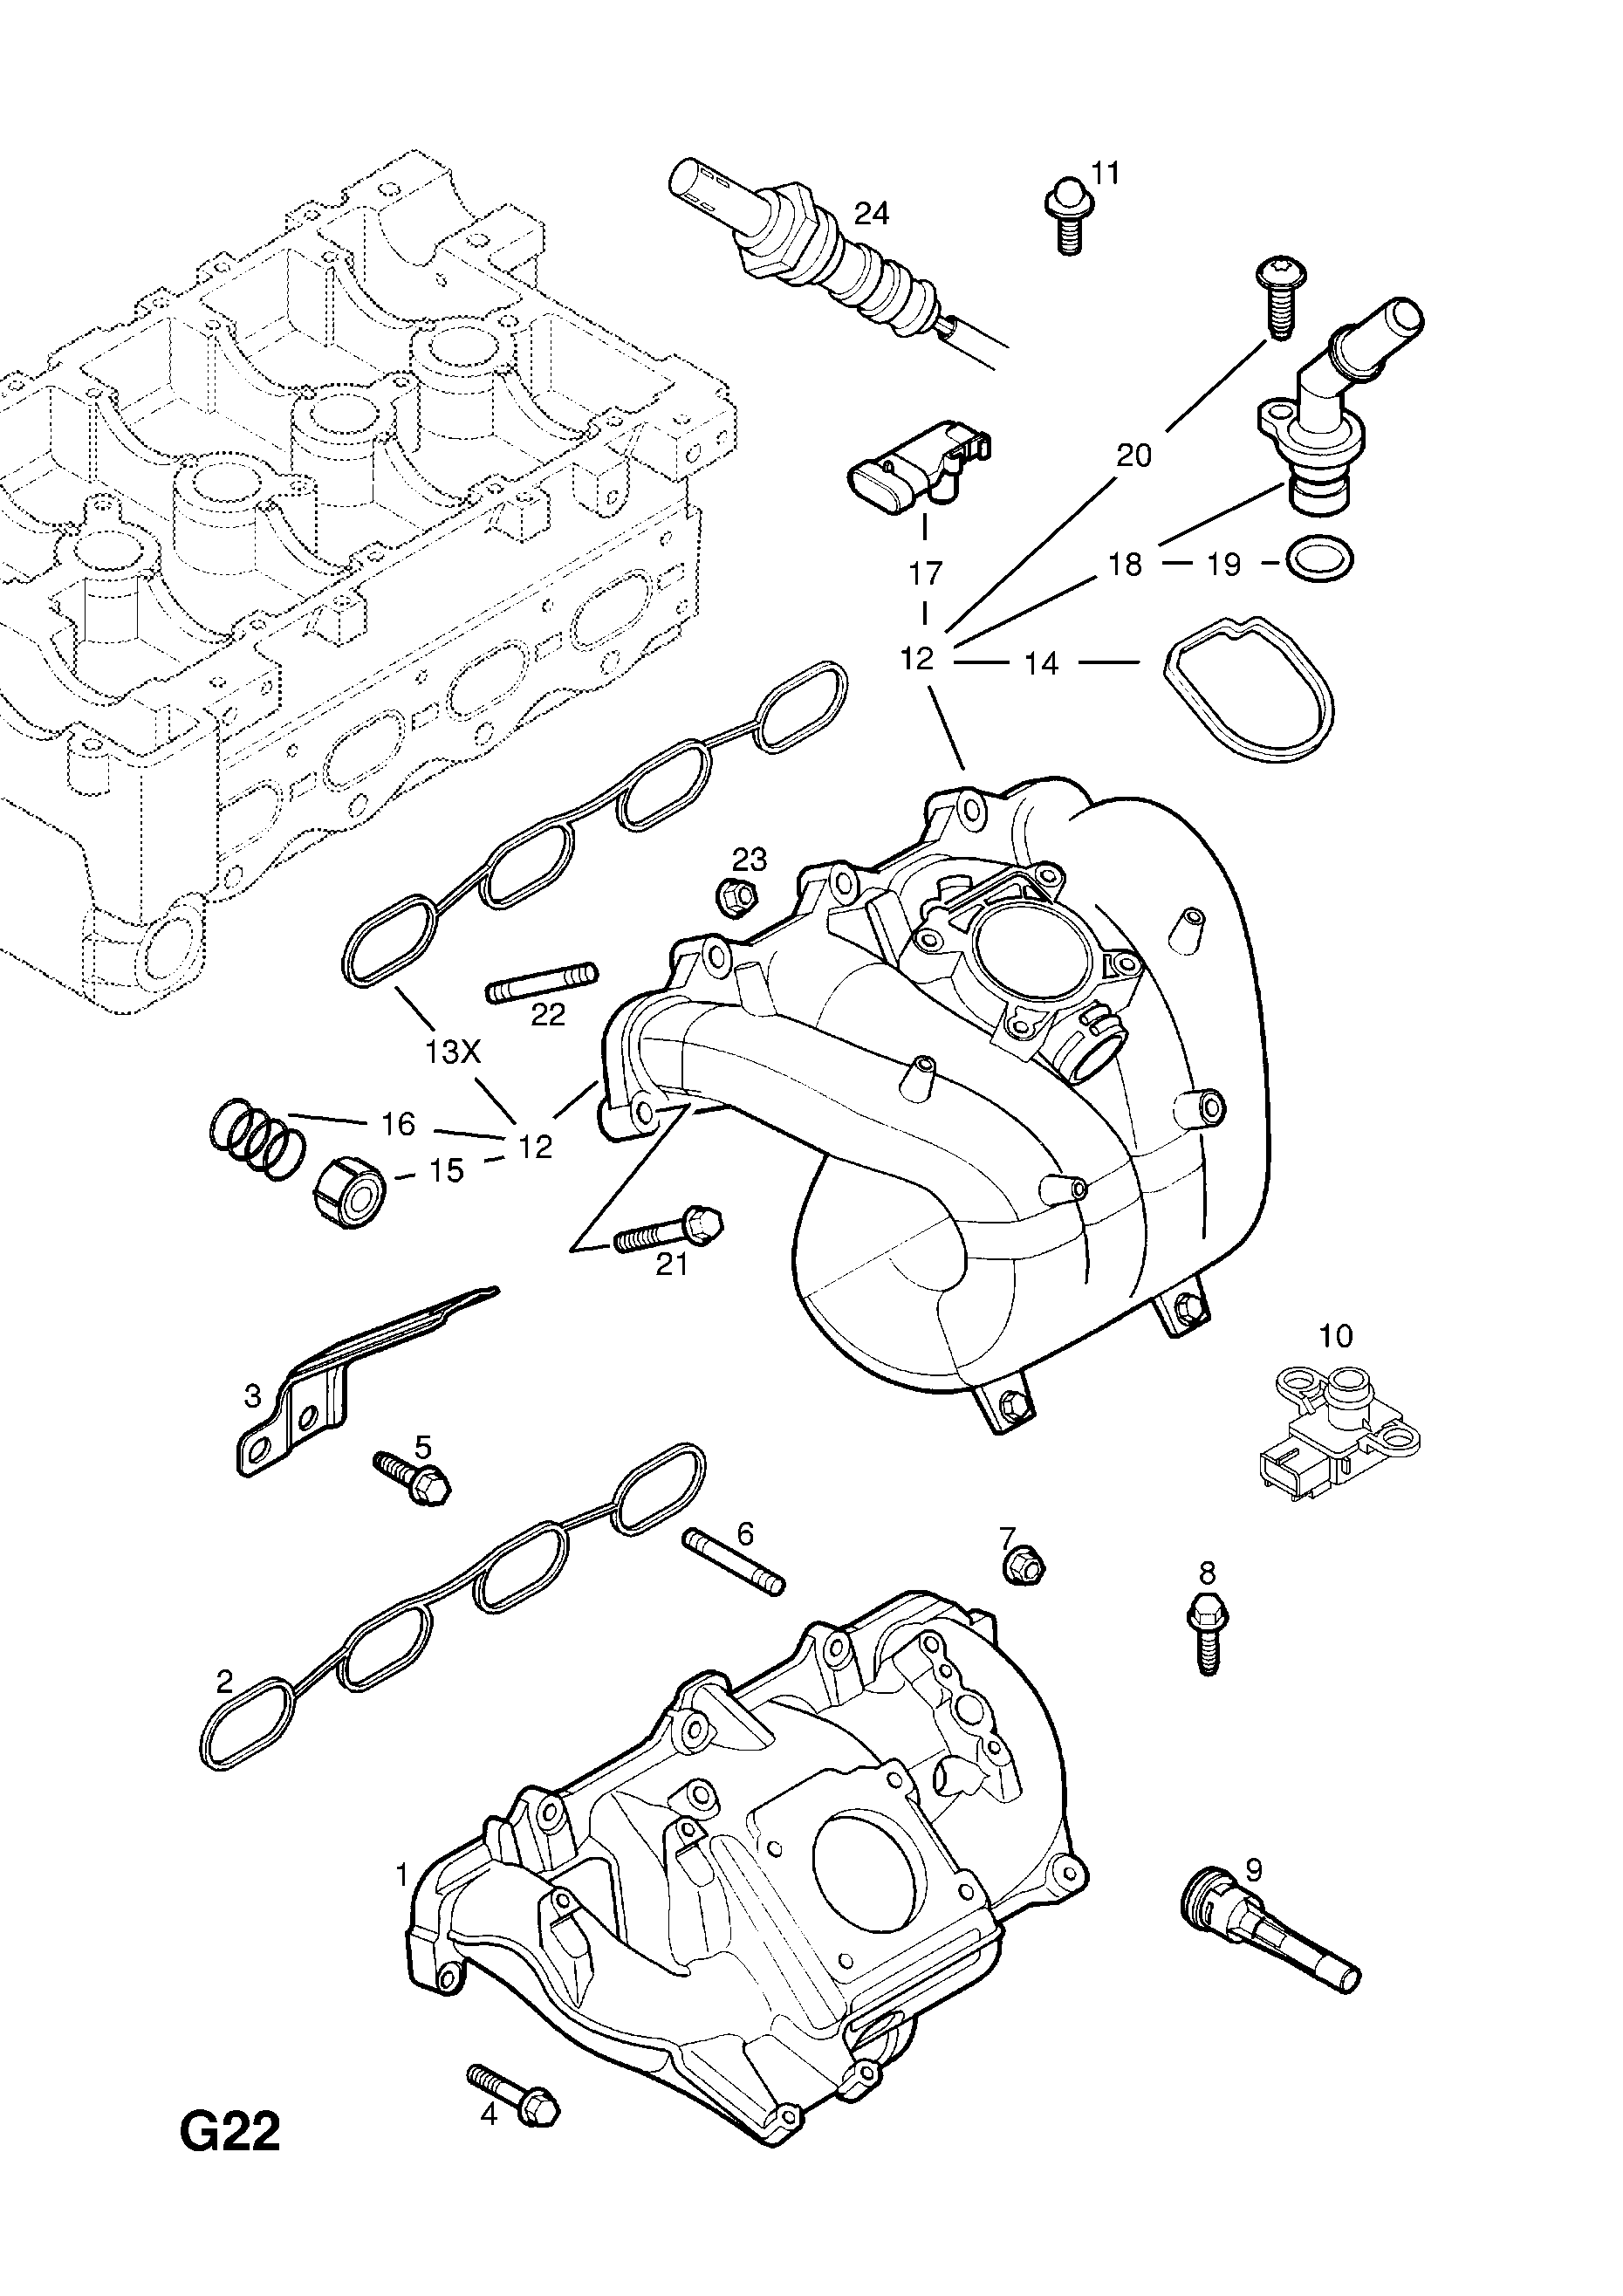 Opel Vectra C 2002 2008 G Fuel And Exhaust 236z22sel61 Cat 236 Engine Diagram List Of Parts